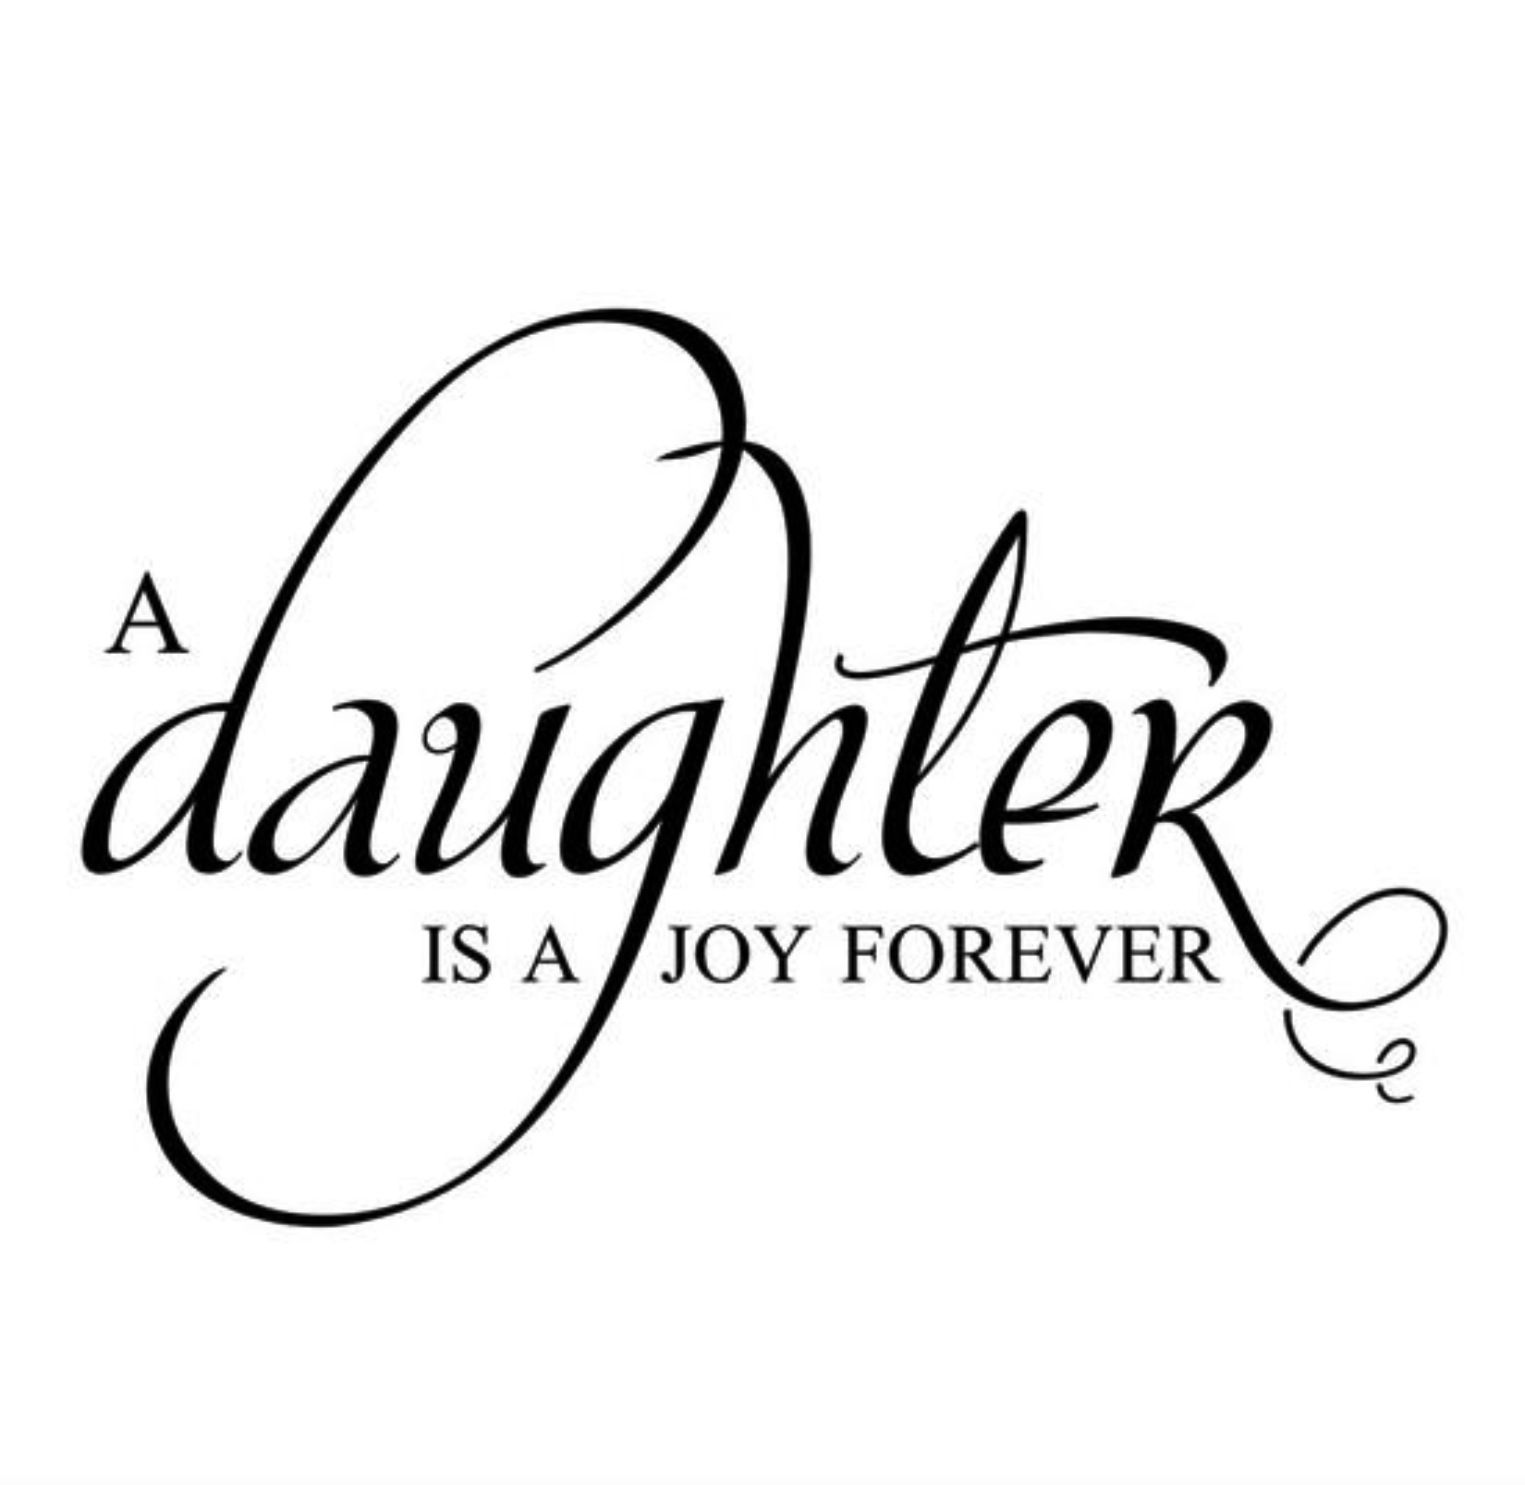 I have such a great and wonderful daughter! She brings so